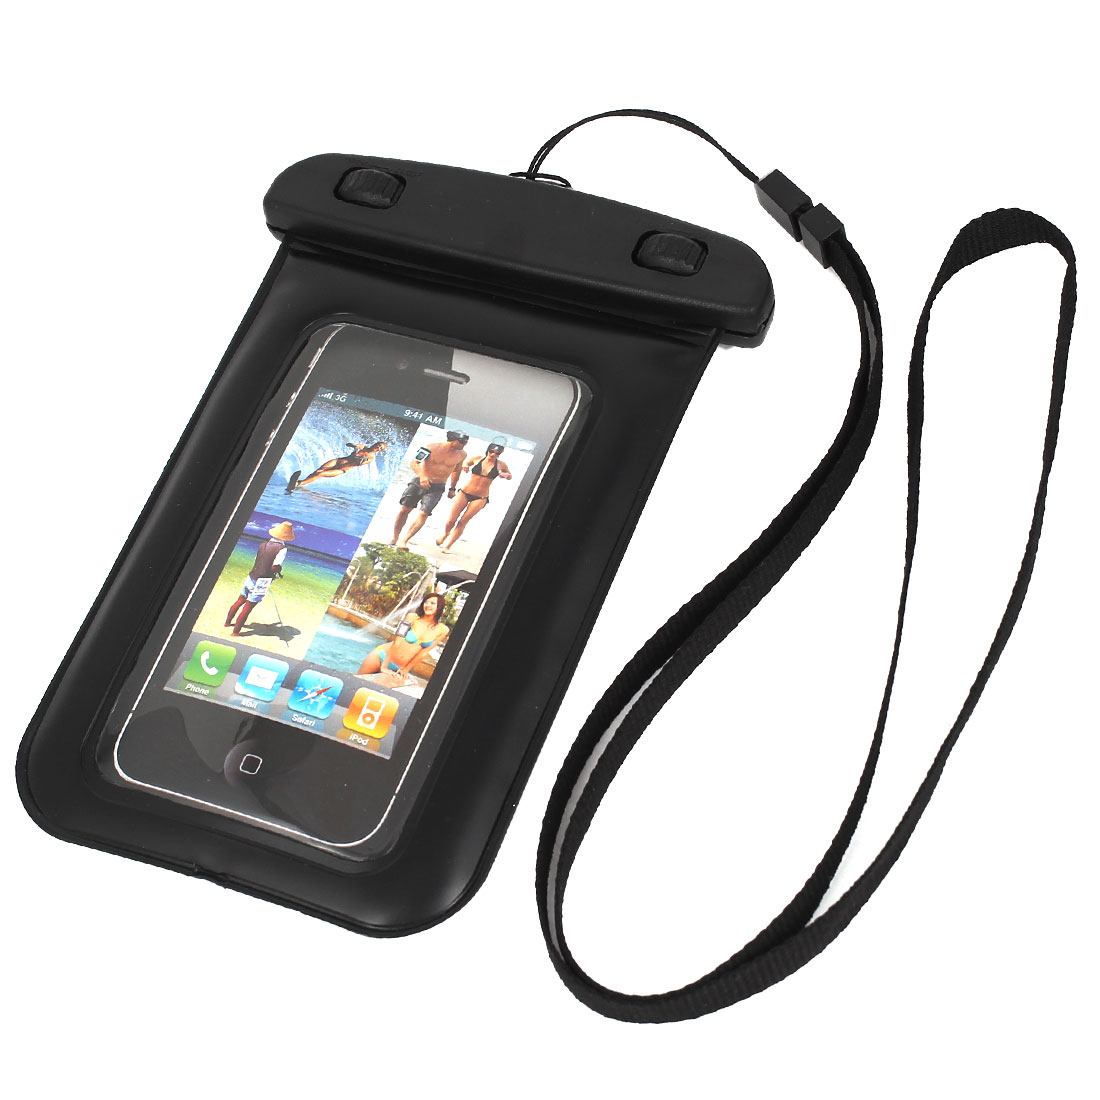 "Underwater Waterproof Case Dry Bag Cover Pouch Black for 4"" Cell Phone"